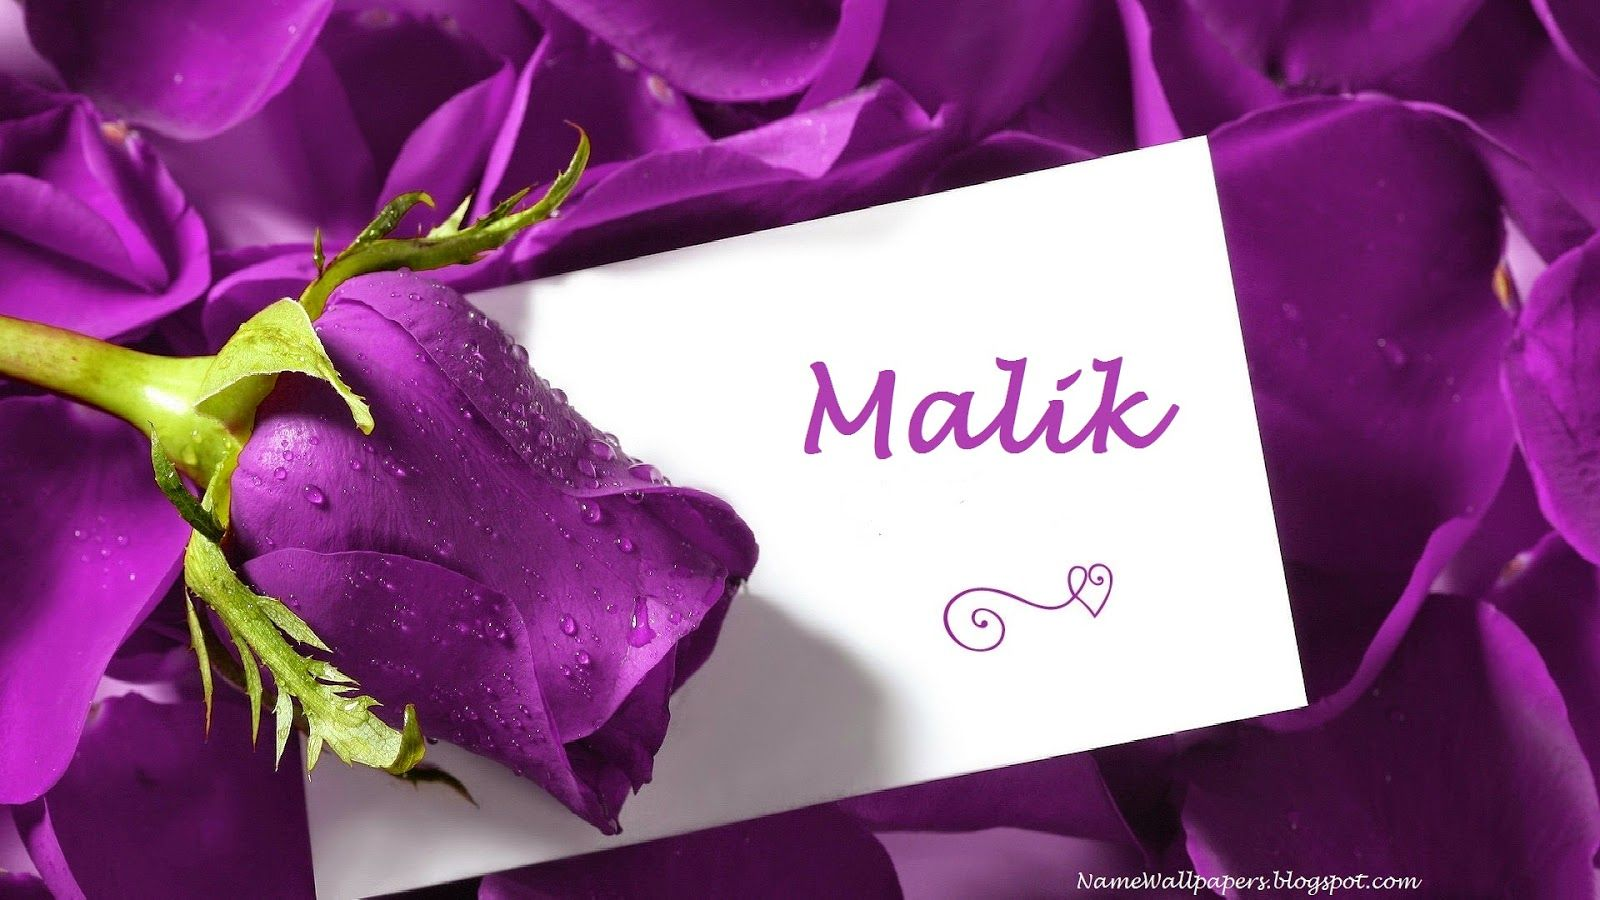 Malik Name Wallpapers Malik Name Wallpaper Urdu Name